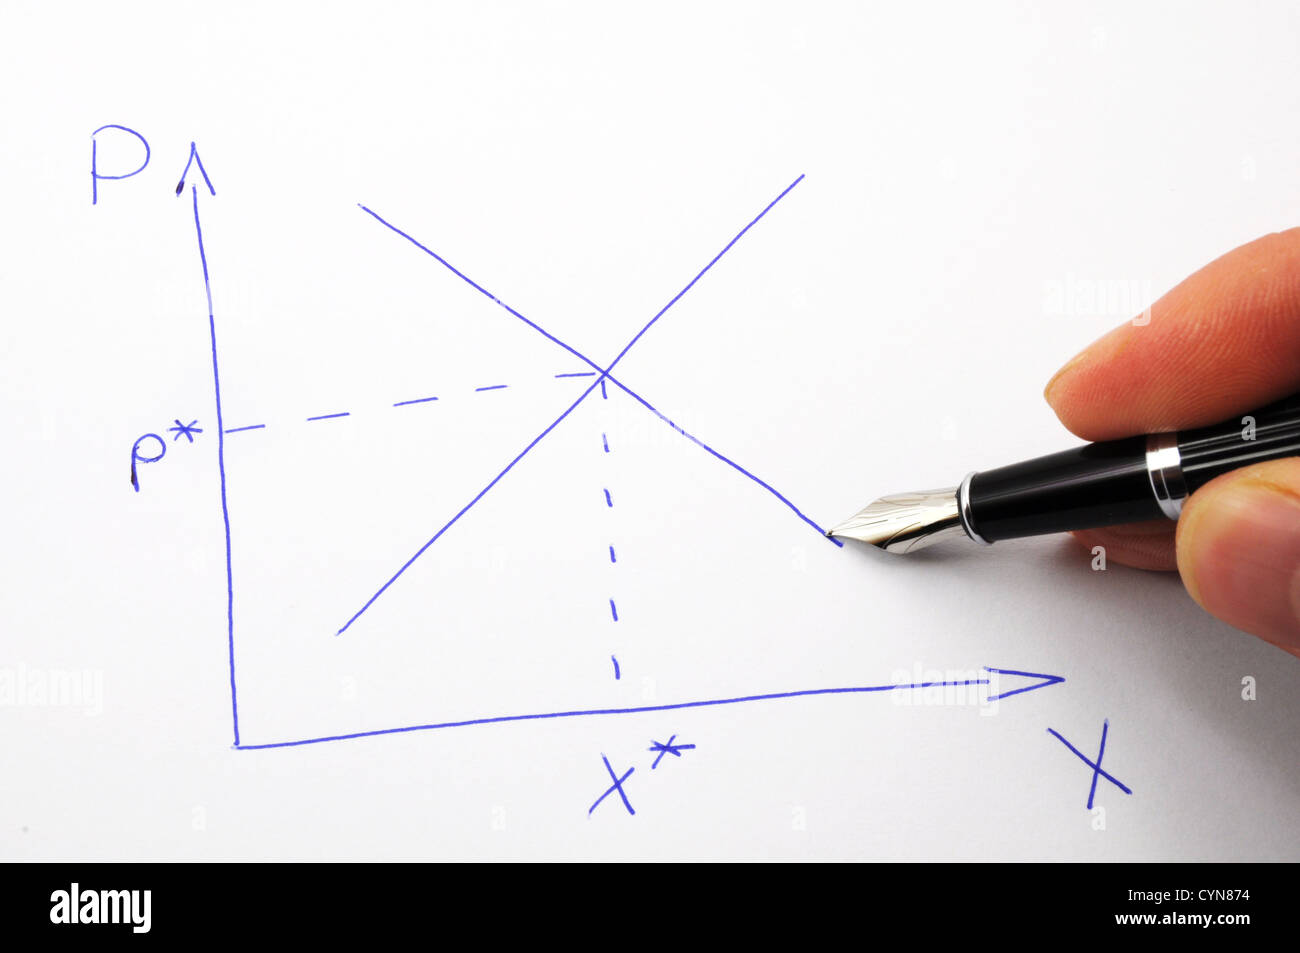 market economics concept with cross of supply and demand curve - Stock Image